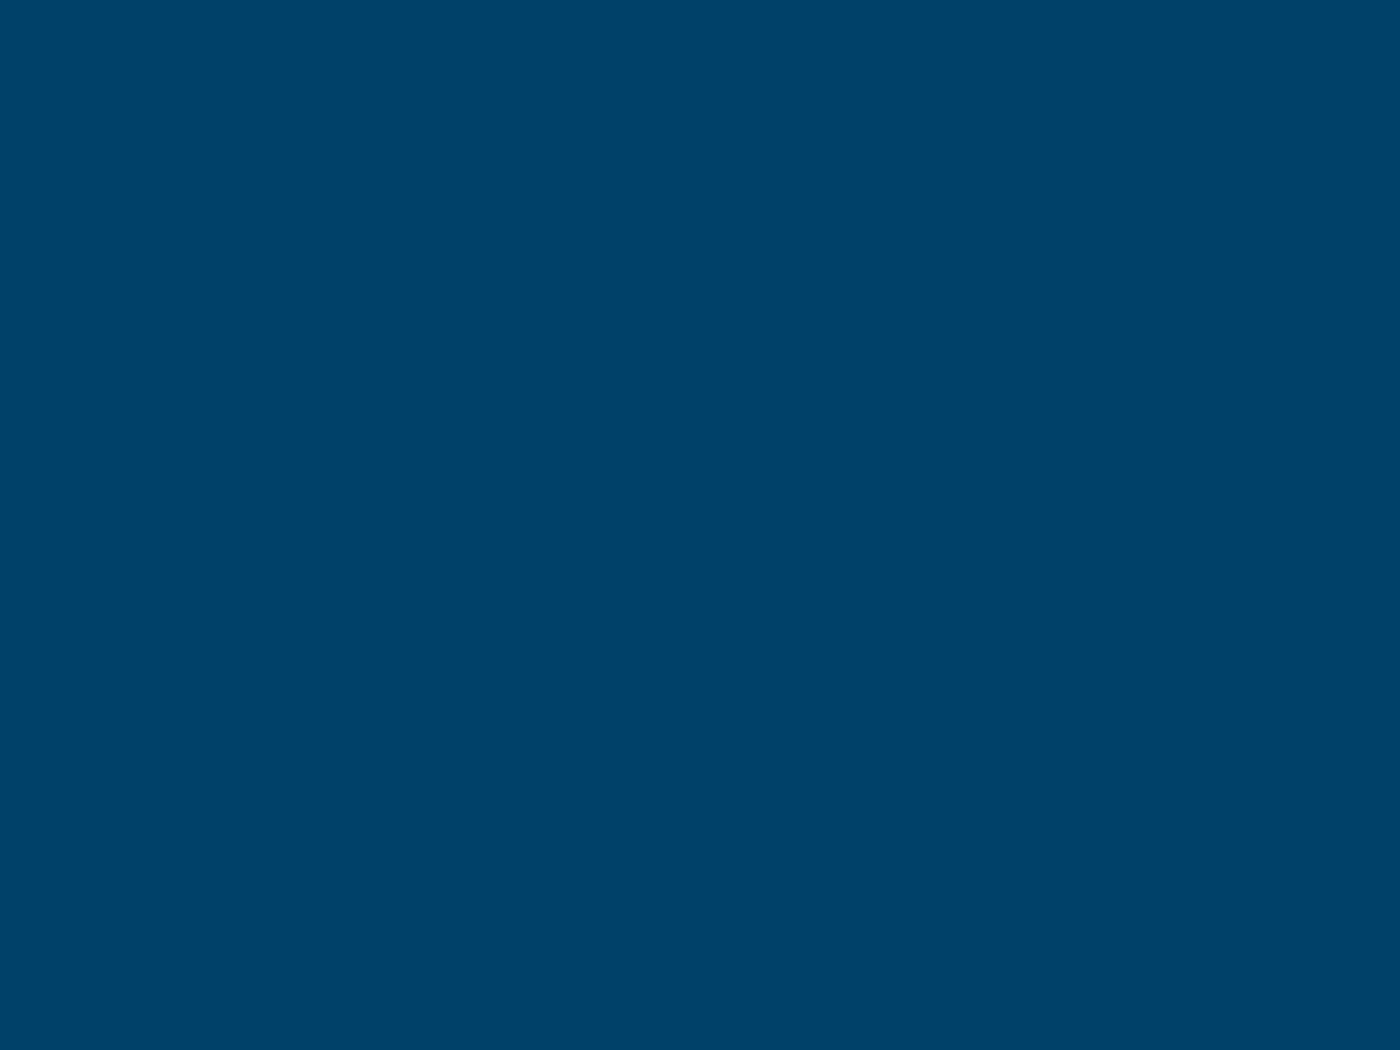 1400x1050 Dark Imperial Blue Solid Color Background